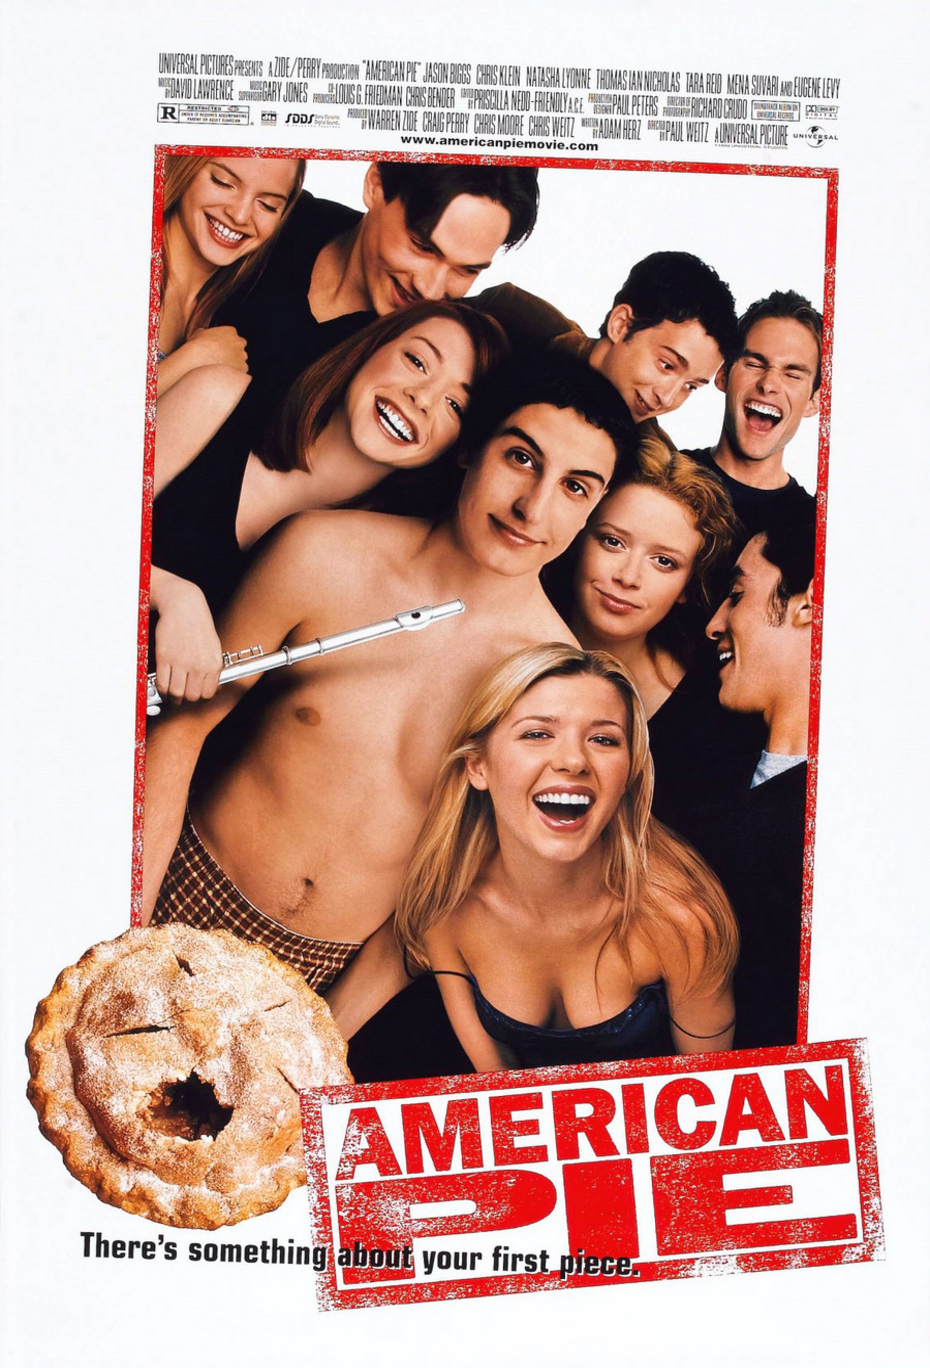 American Reunion - Movie Poster #2 (Original)